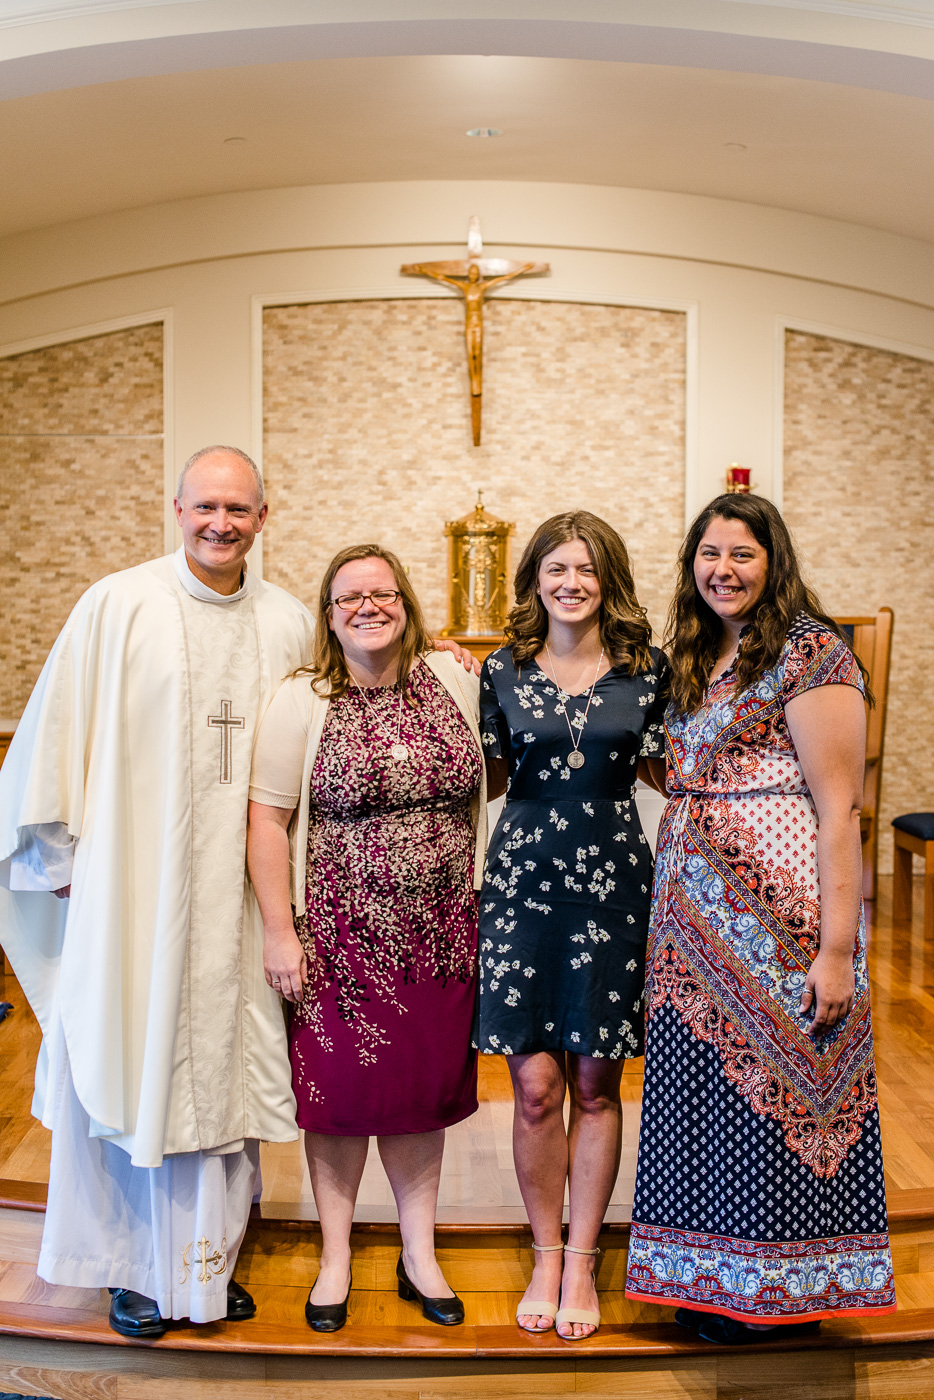 Emily-Annette-Photography-Catholic-Consecrated-Commitment-Mass-Event-Diocese-Arlington-Fairfax-Photographer-Youth-Apostles-August-2018-18.jpg